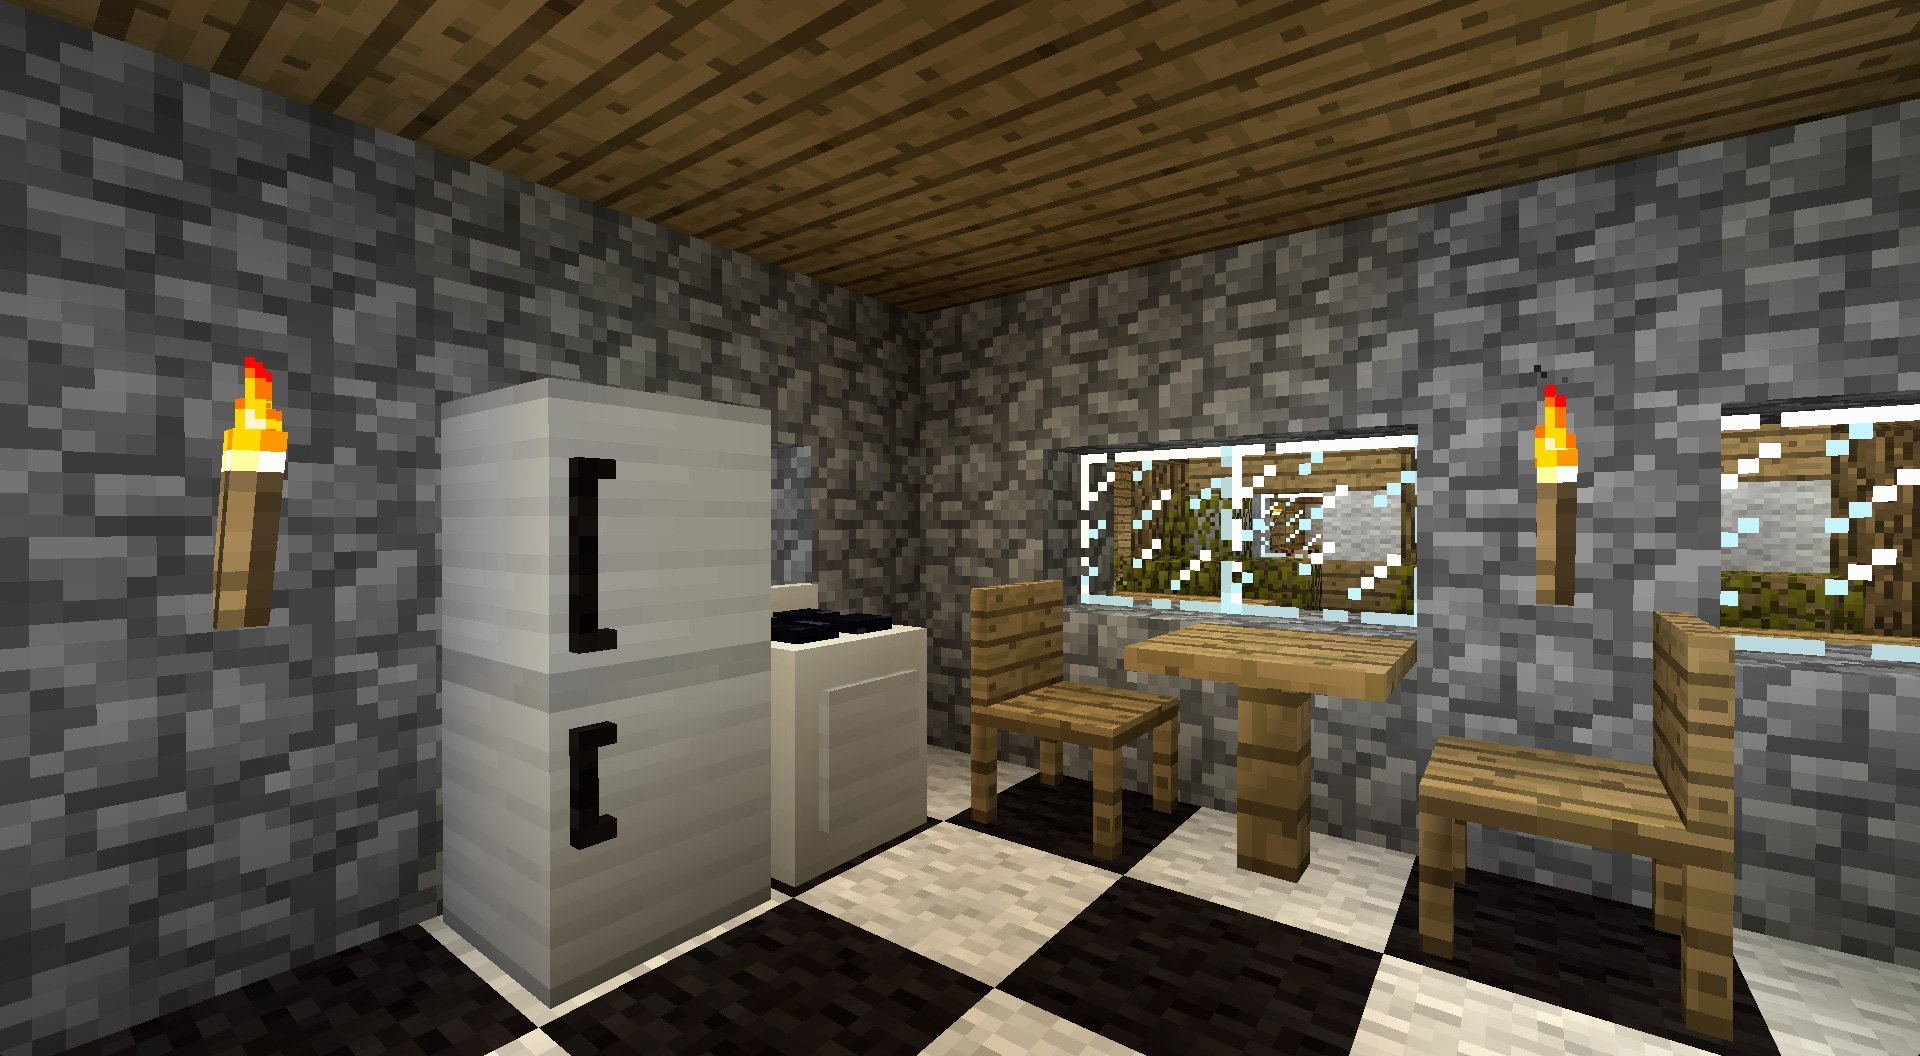 Furniture mod minecraft mods for Cool furniture ideas